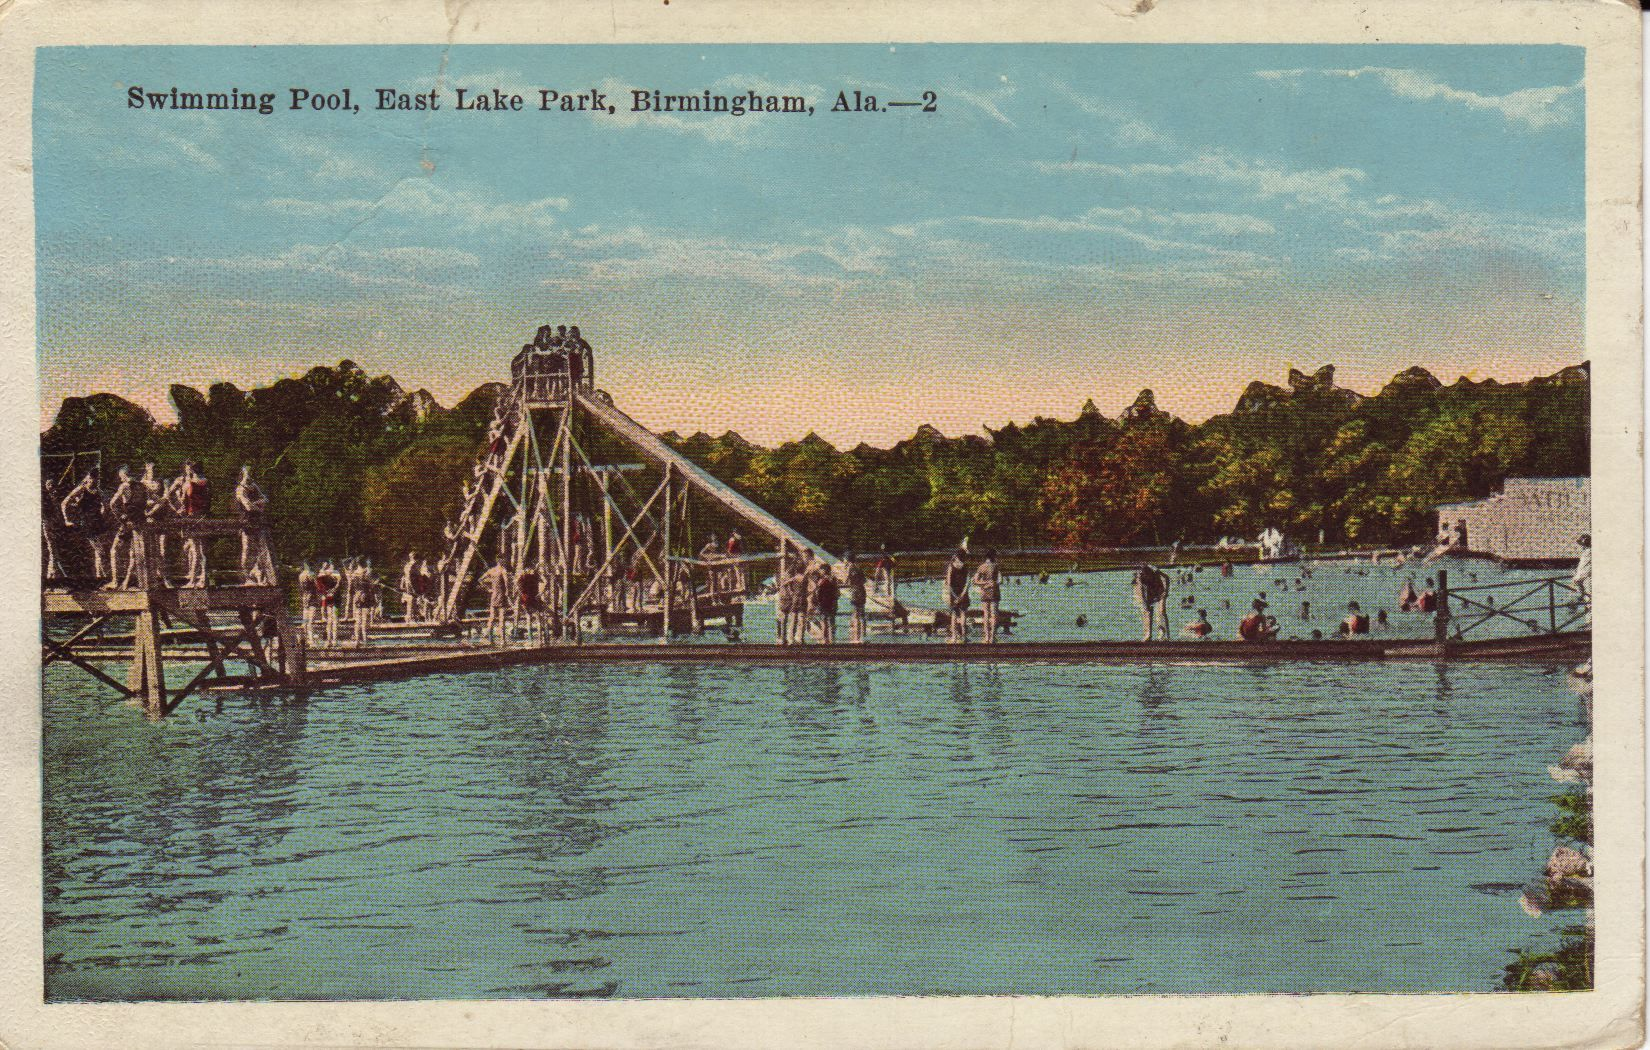 Alabama birmingham east lake park swimming pool - University of birmingham swimming pool ...